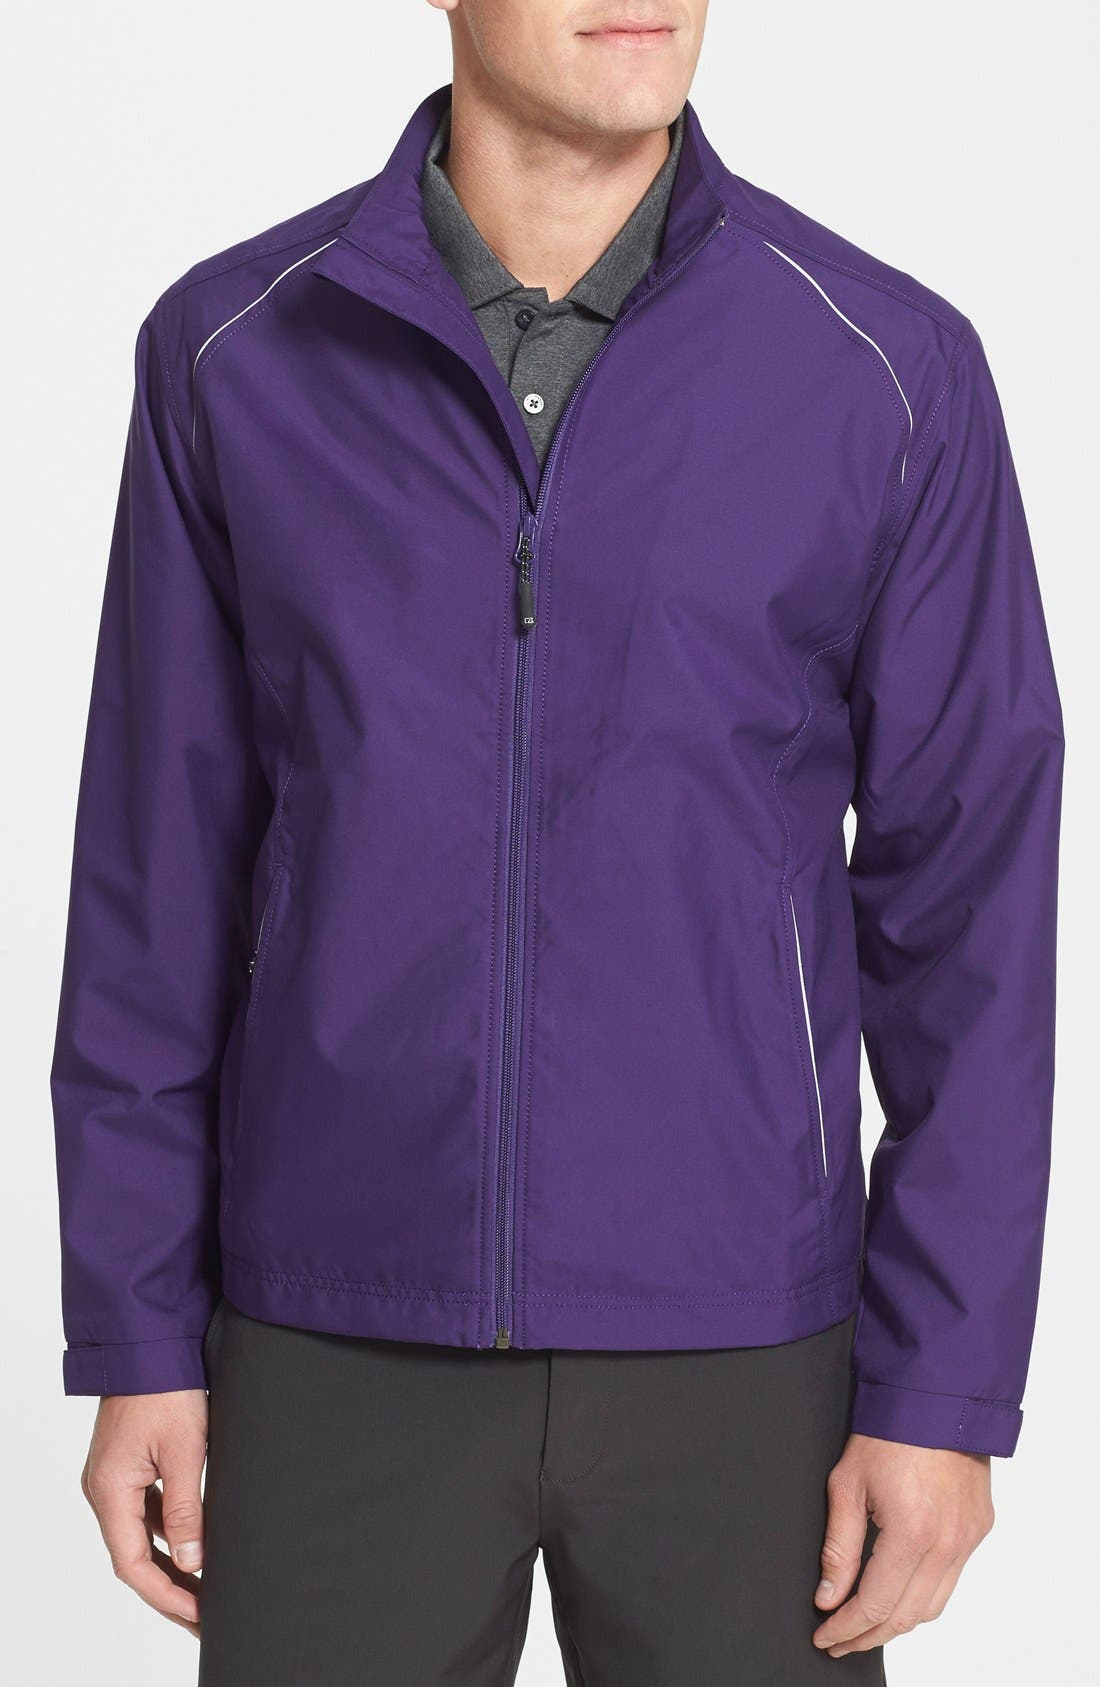 CUTTER & BUCK 'WeatherTec Beacon' Water Resistant Jacket